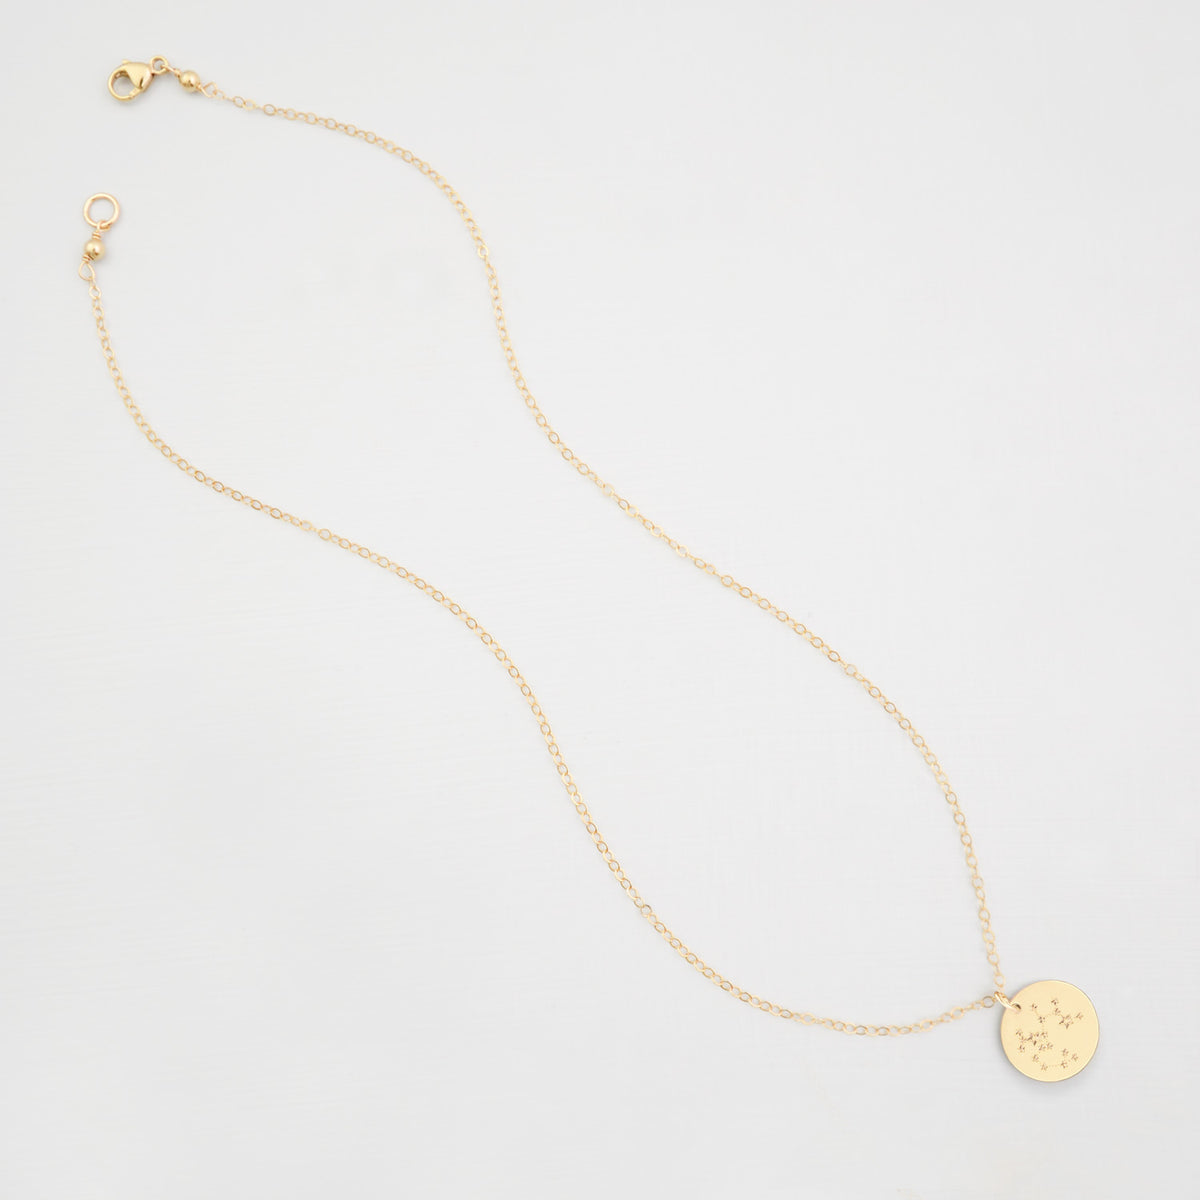 zodiac constellation disk necklace